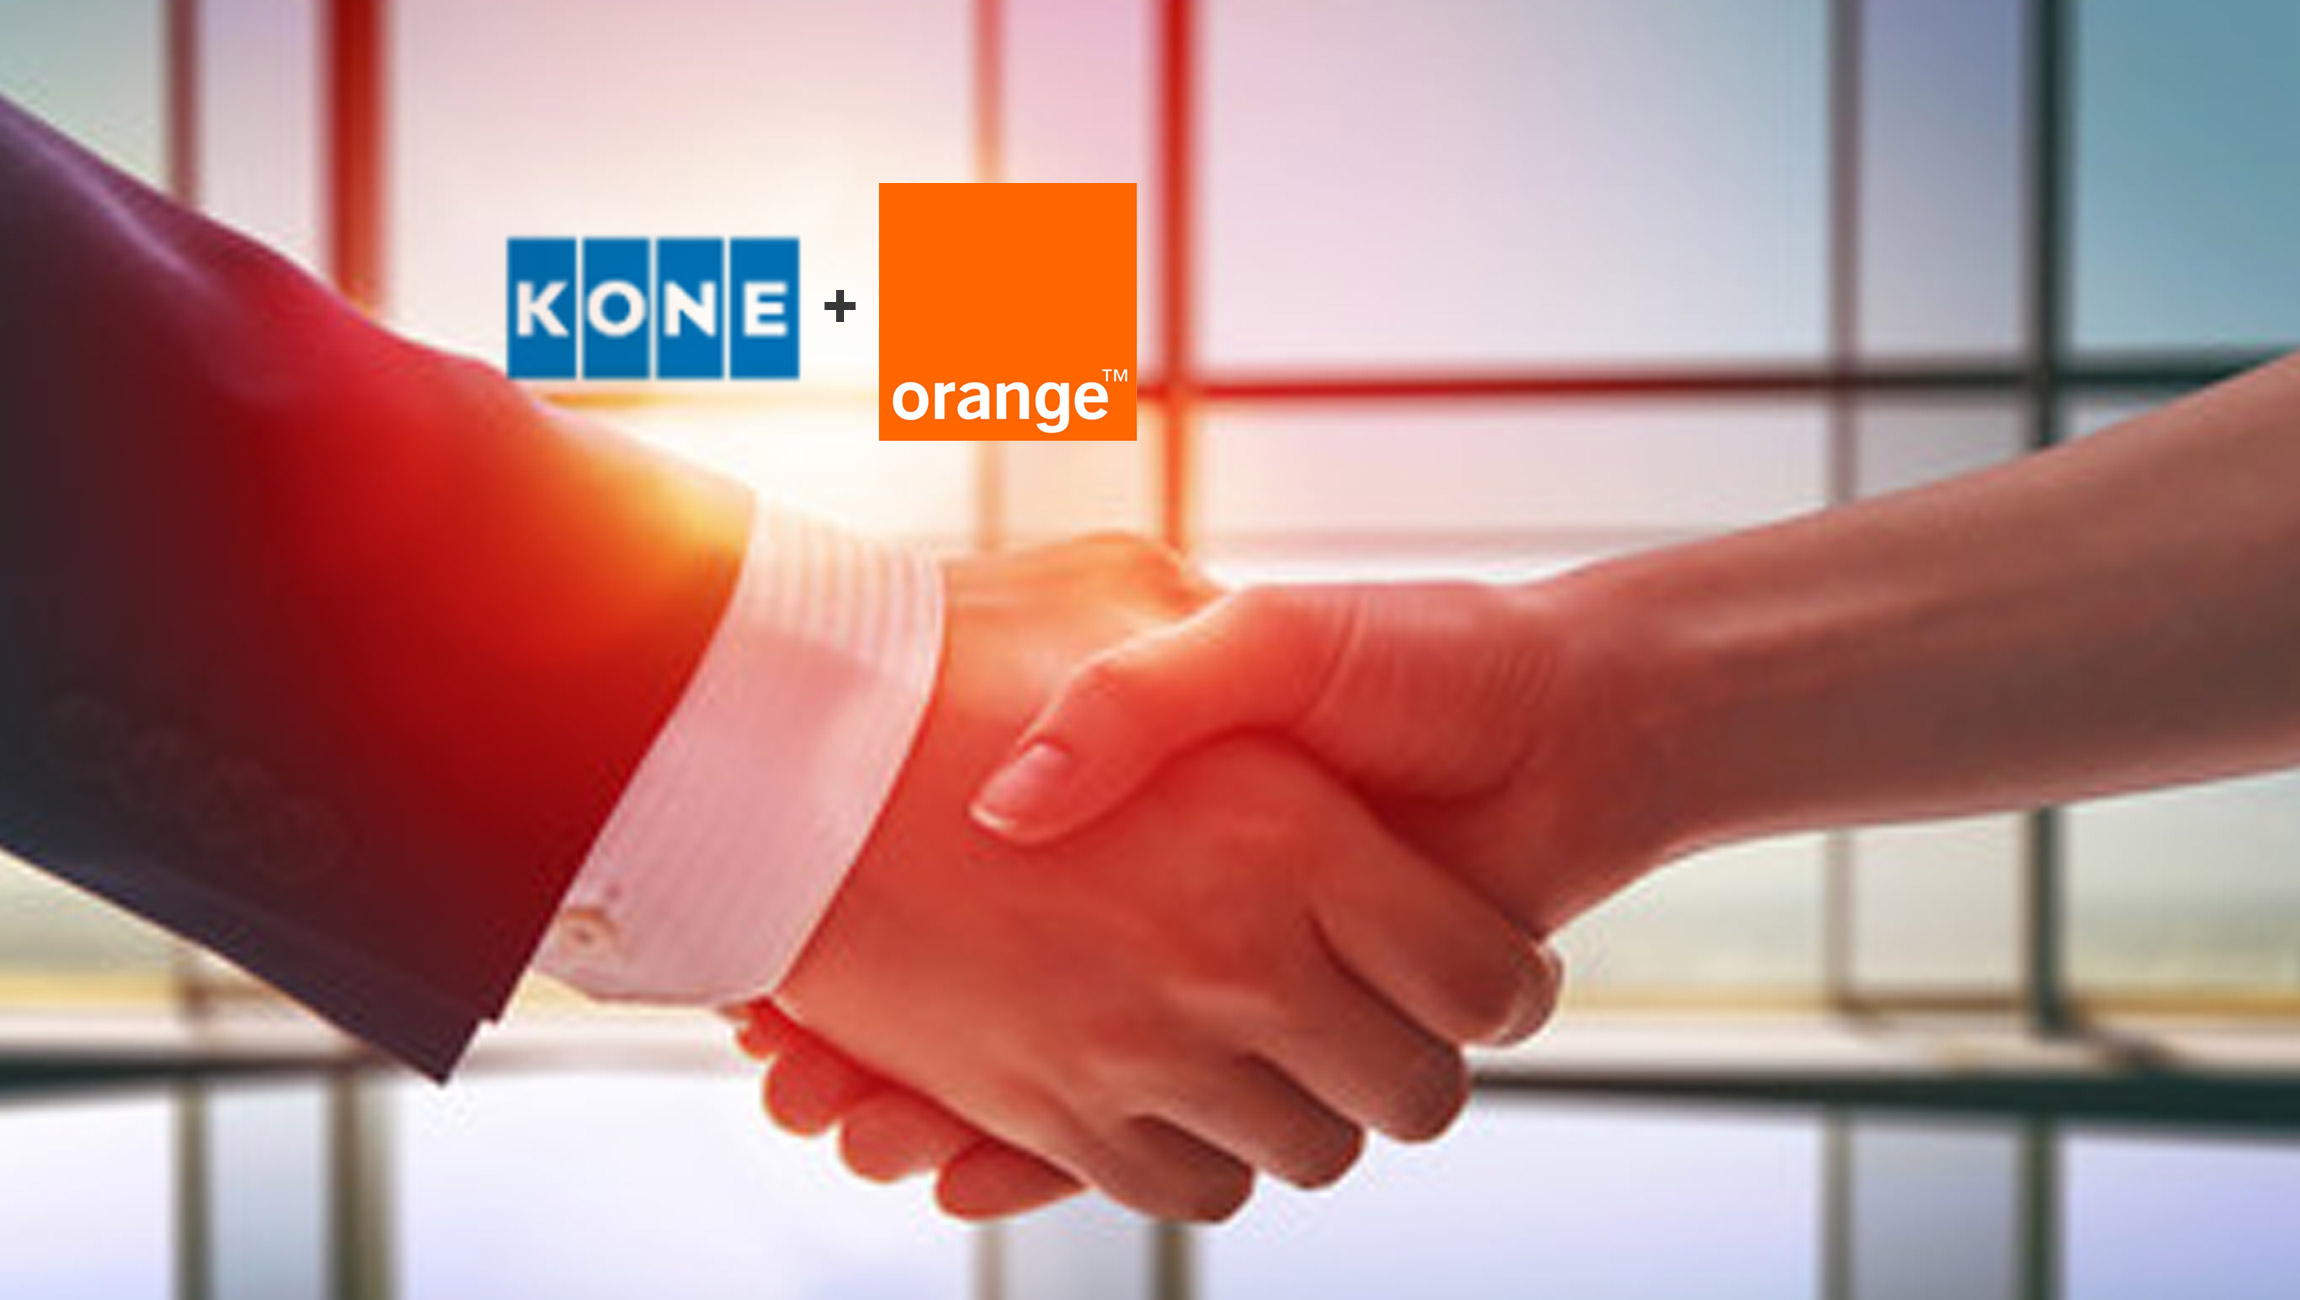 KONE Strengthens Its Partnership With Orange Business Services and Migrates Its Contact Center Infrastructure To The Cloud